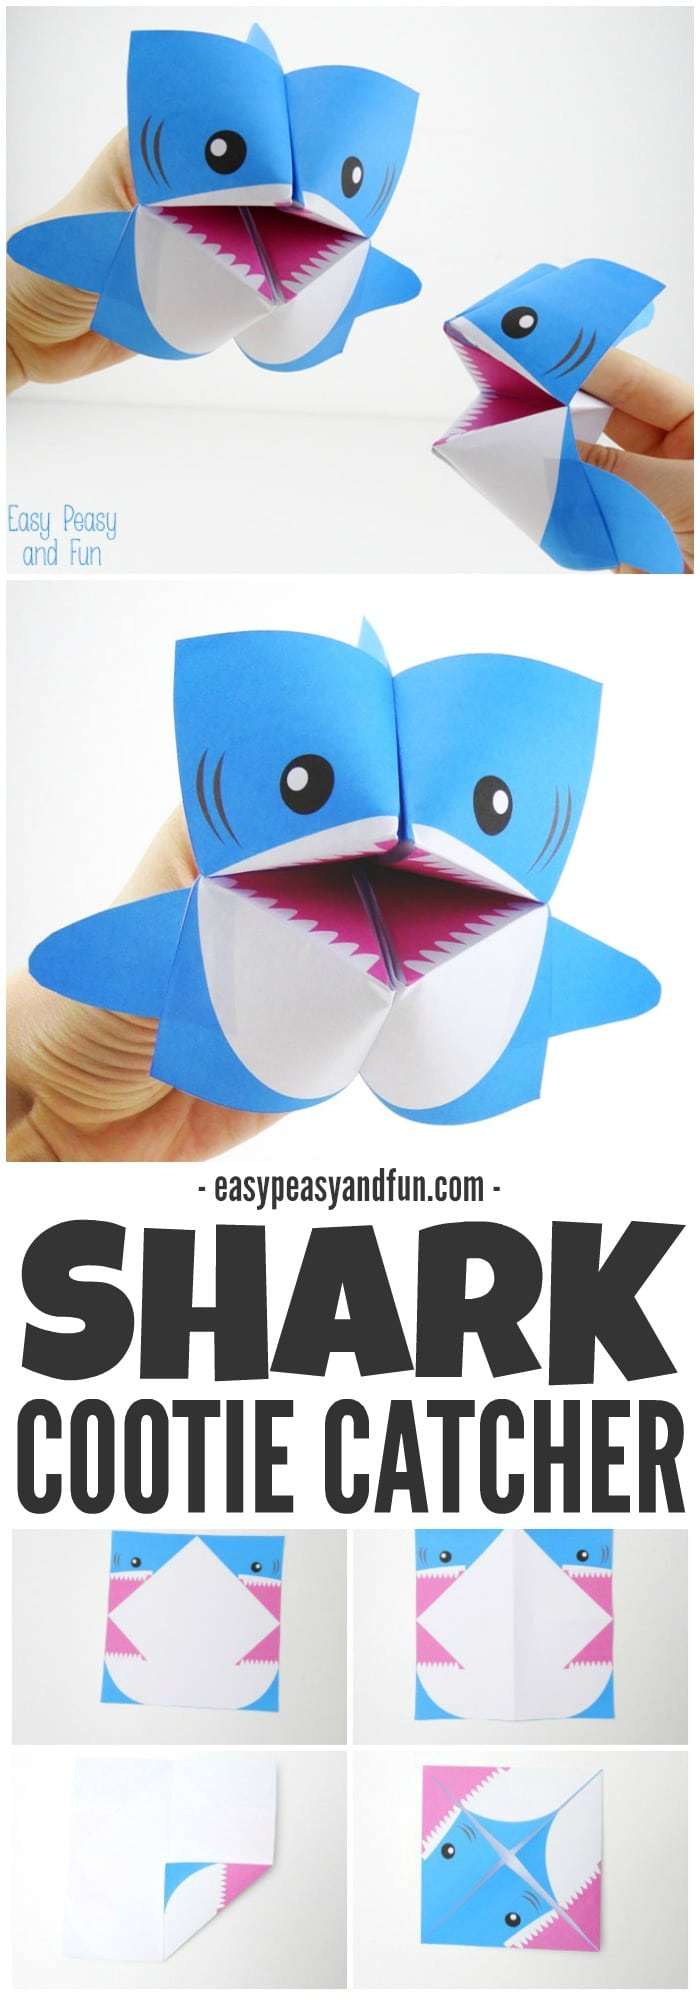 Shark cootie catcher origami for kids easy peasy and fun printable shark cootie catcher jeuxipadfo Gallery